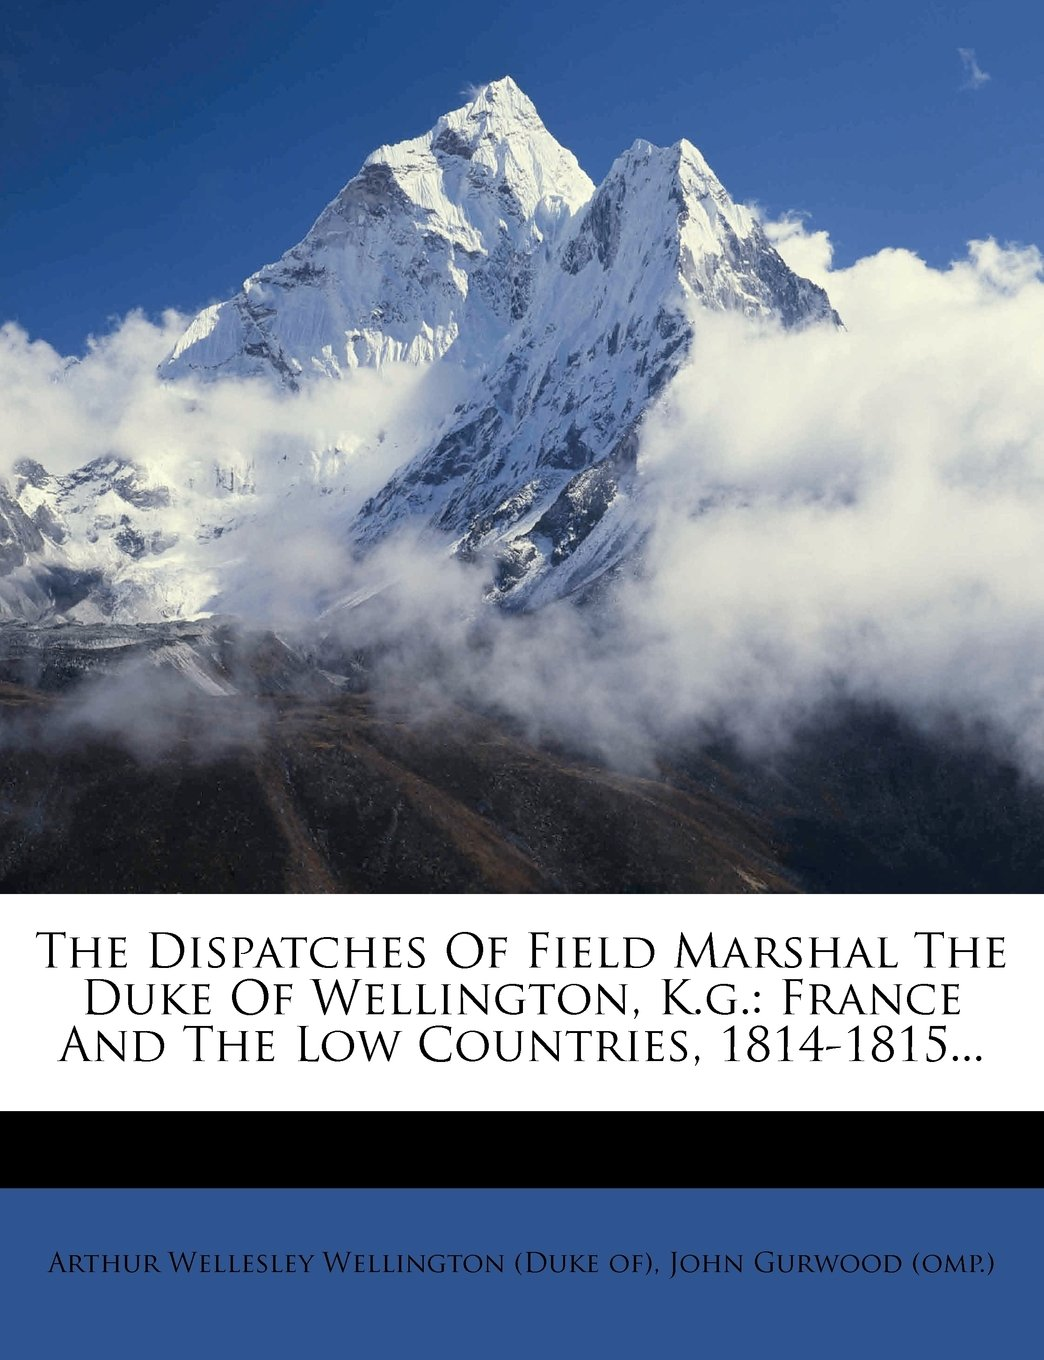 The Dispatches Of Field Marshal The Duke Of Wellington, K.g.: France And The Low Countries, 1814-1815... ebook